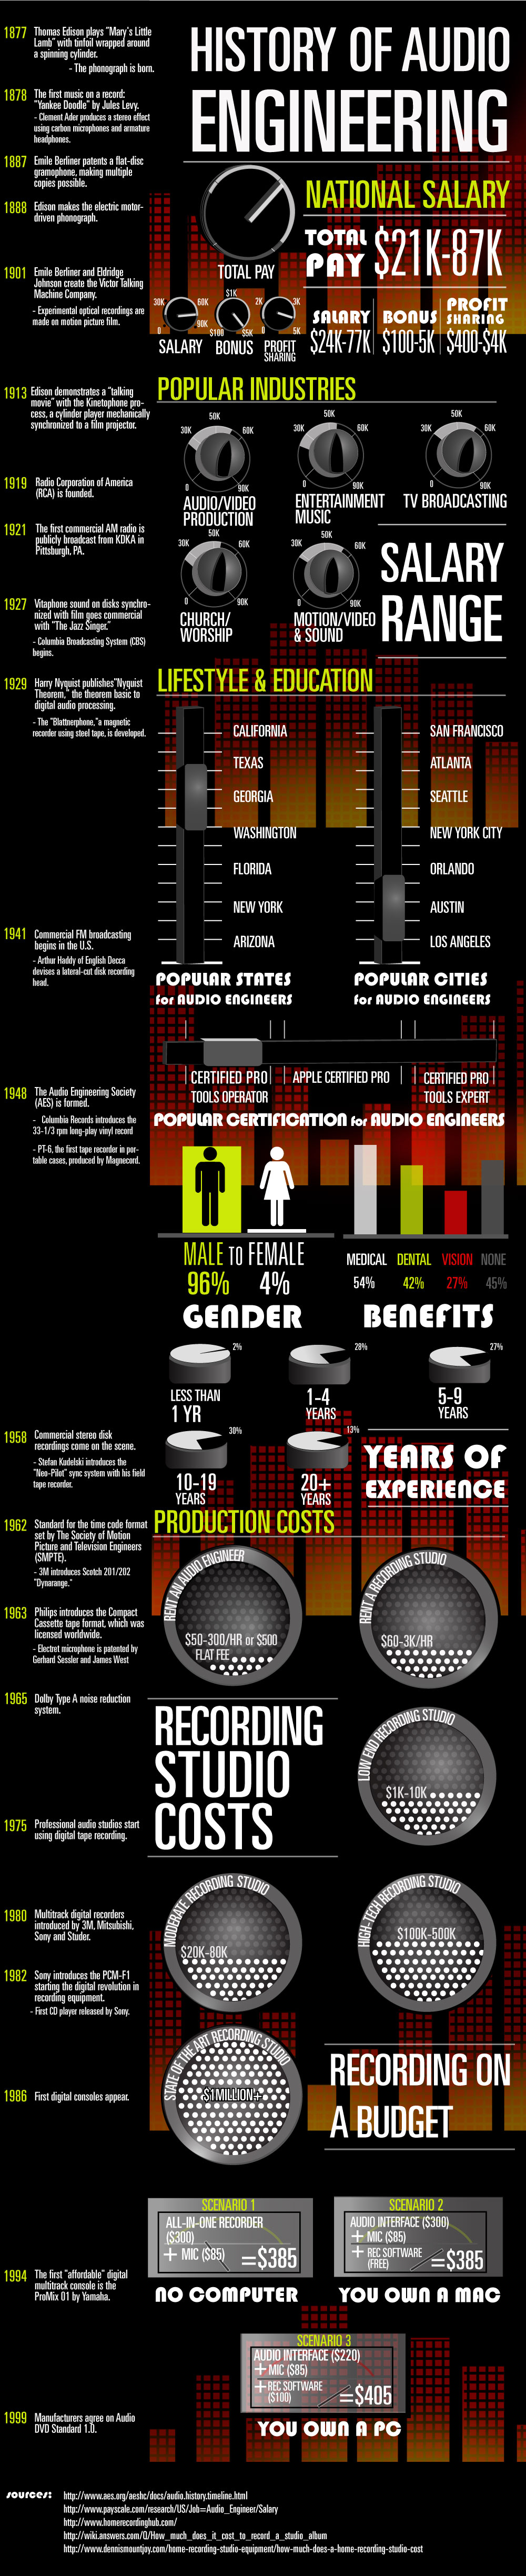 Audio Engineer Salaries